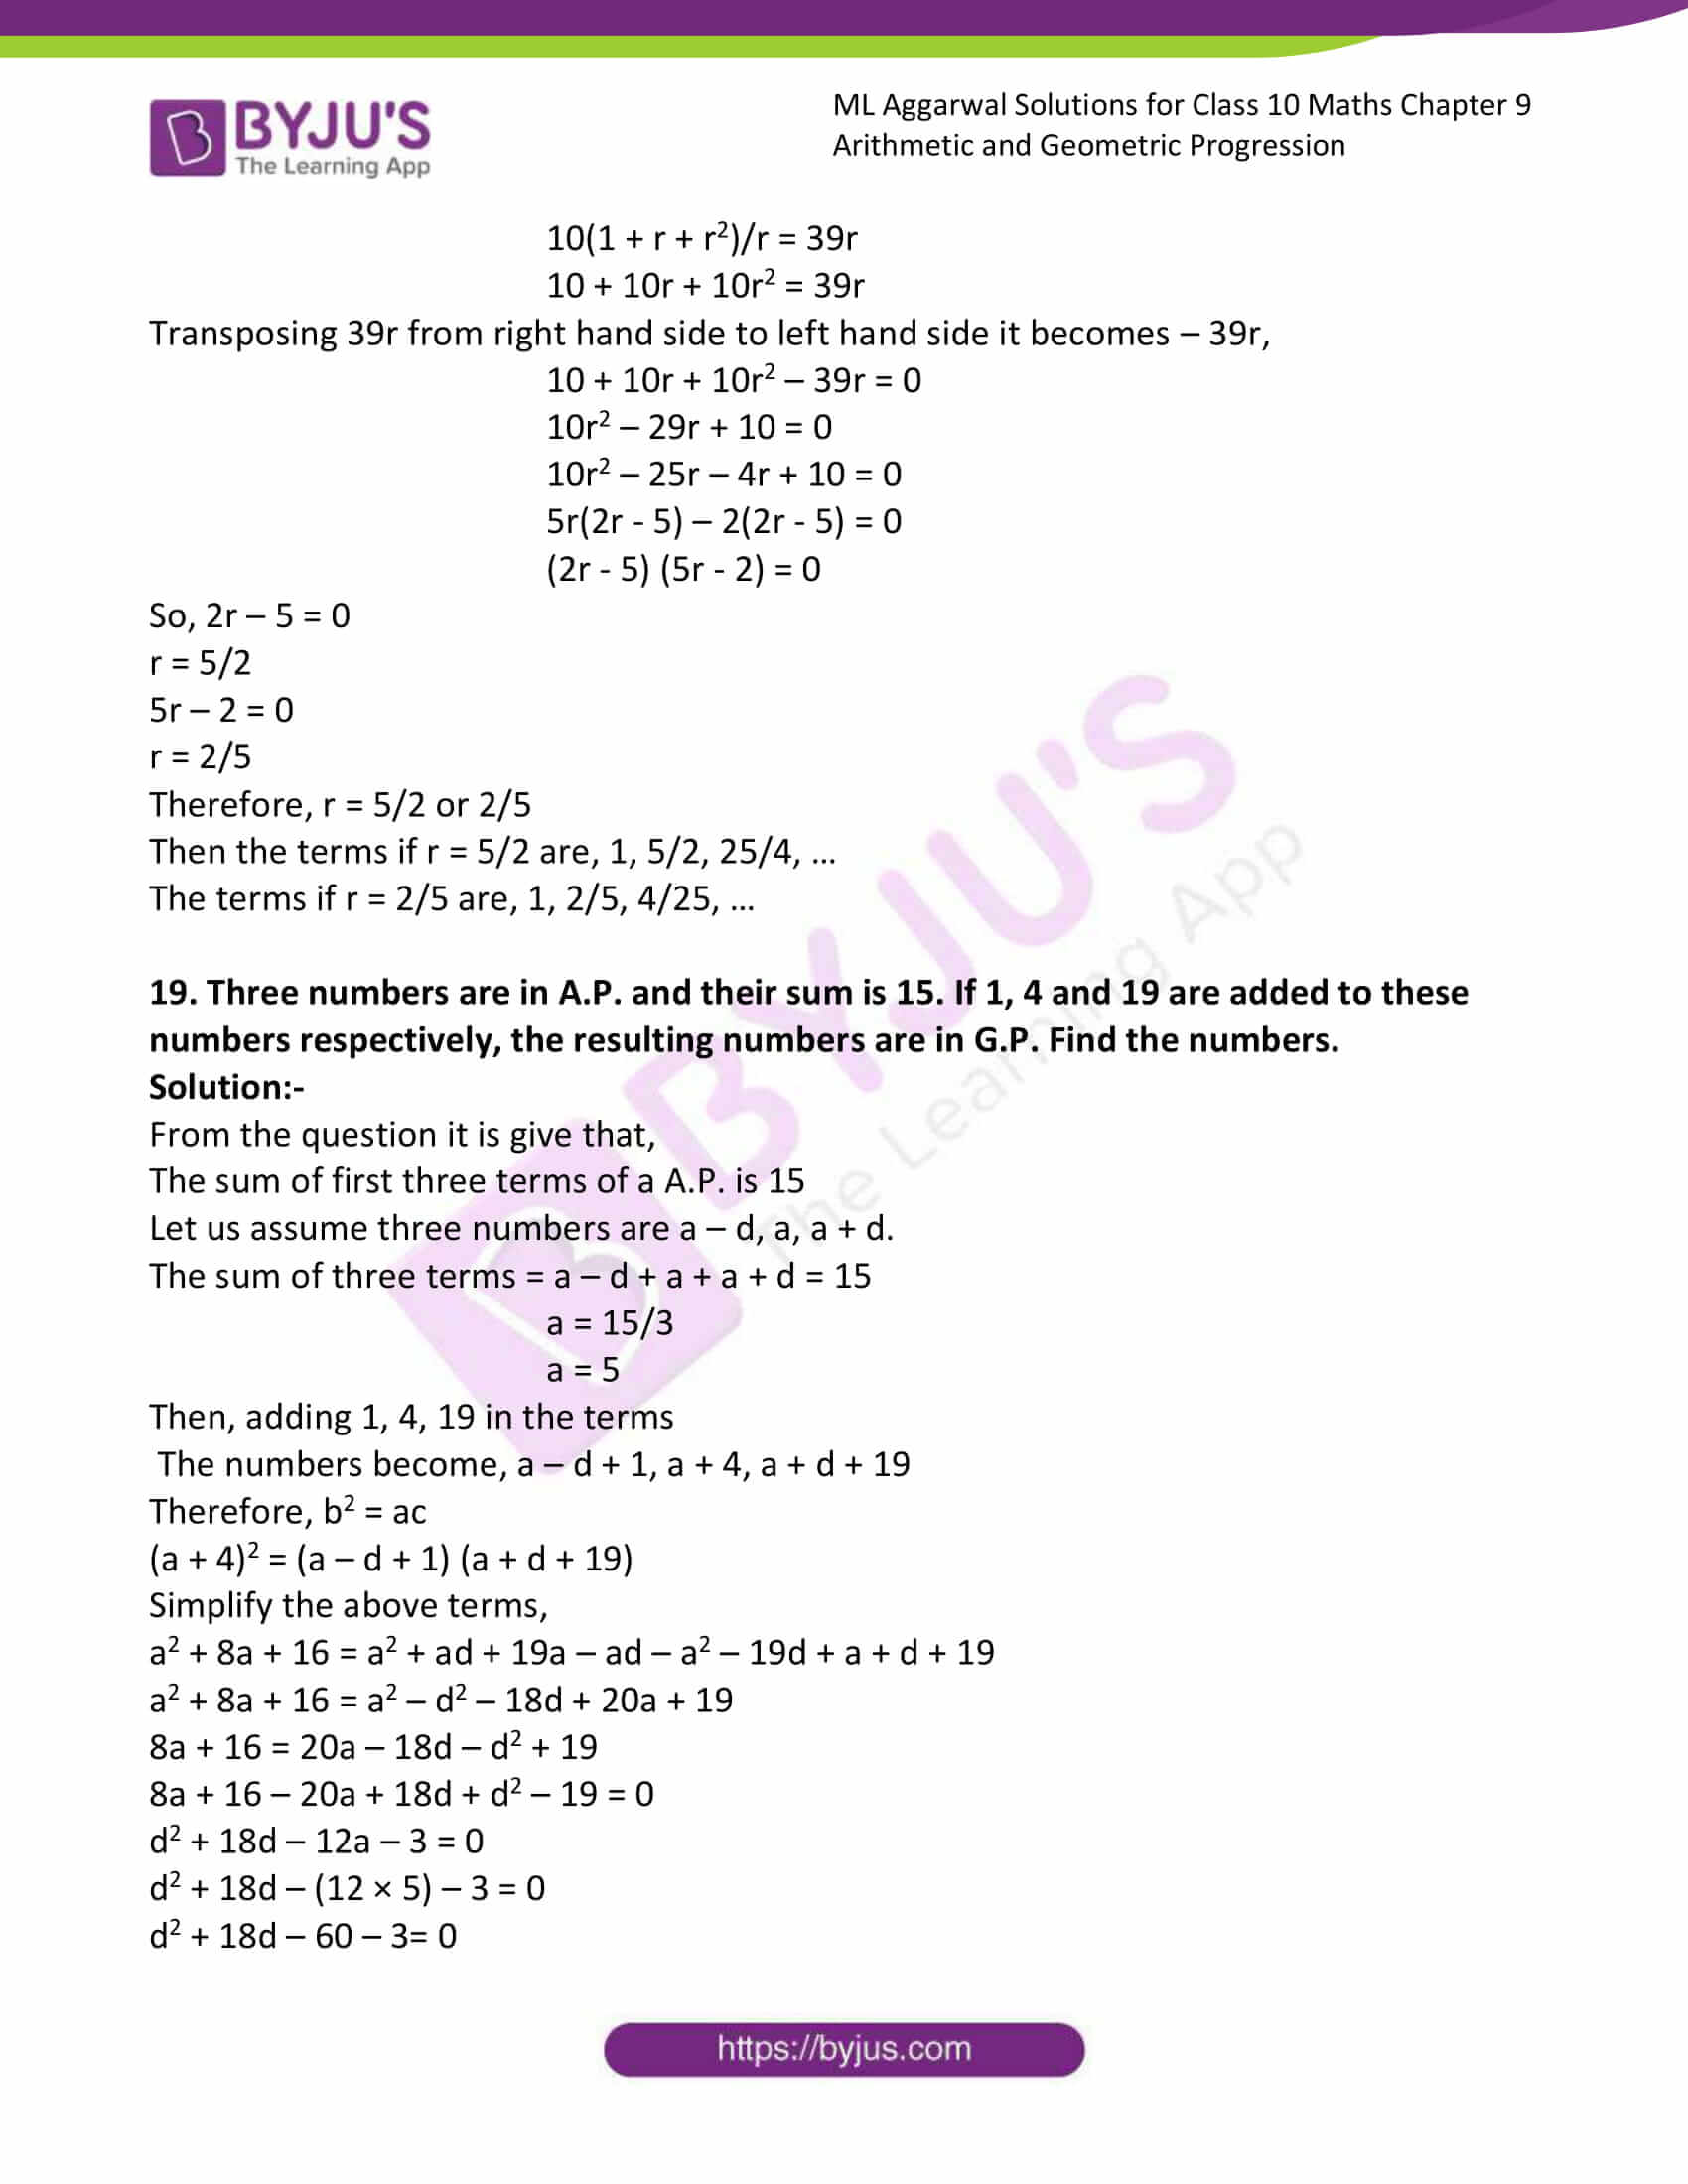 ml aggarwal solutions class 10 maths chapter 9 55